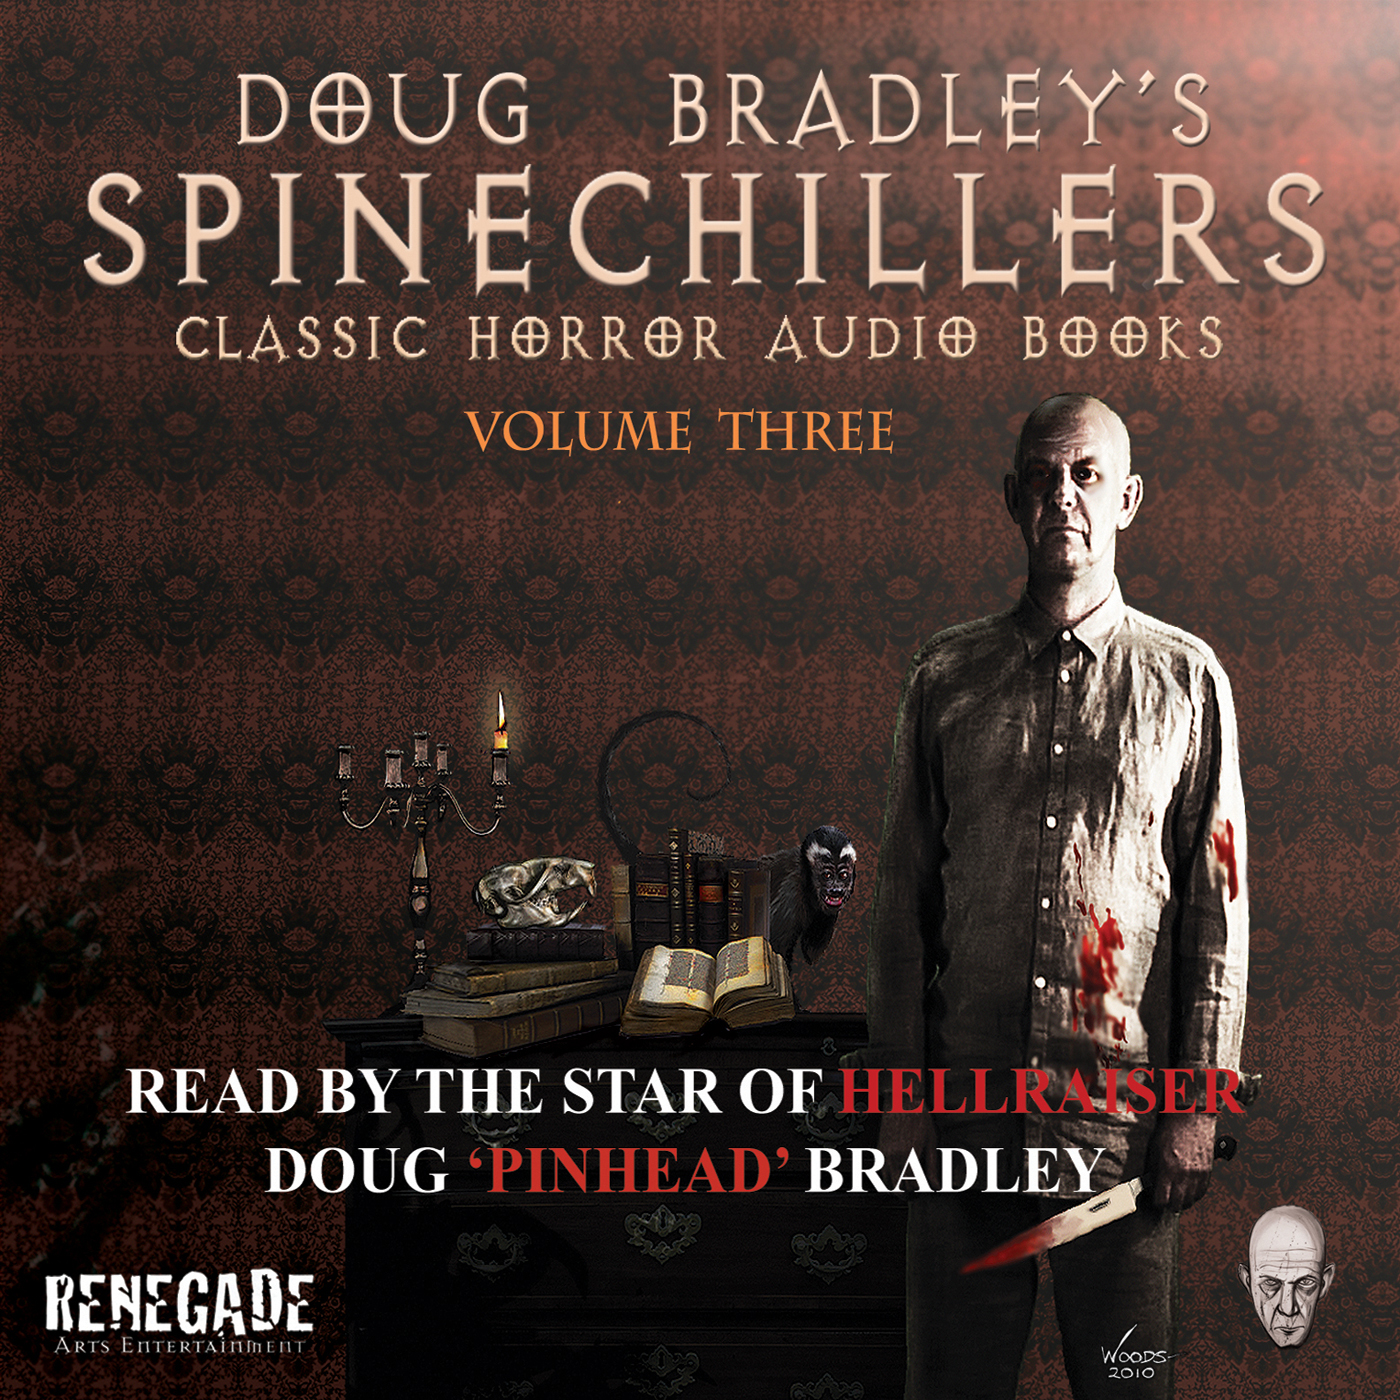 Doug Bradley's Spinechillers Volume Three